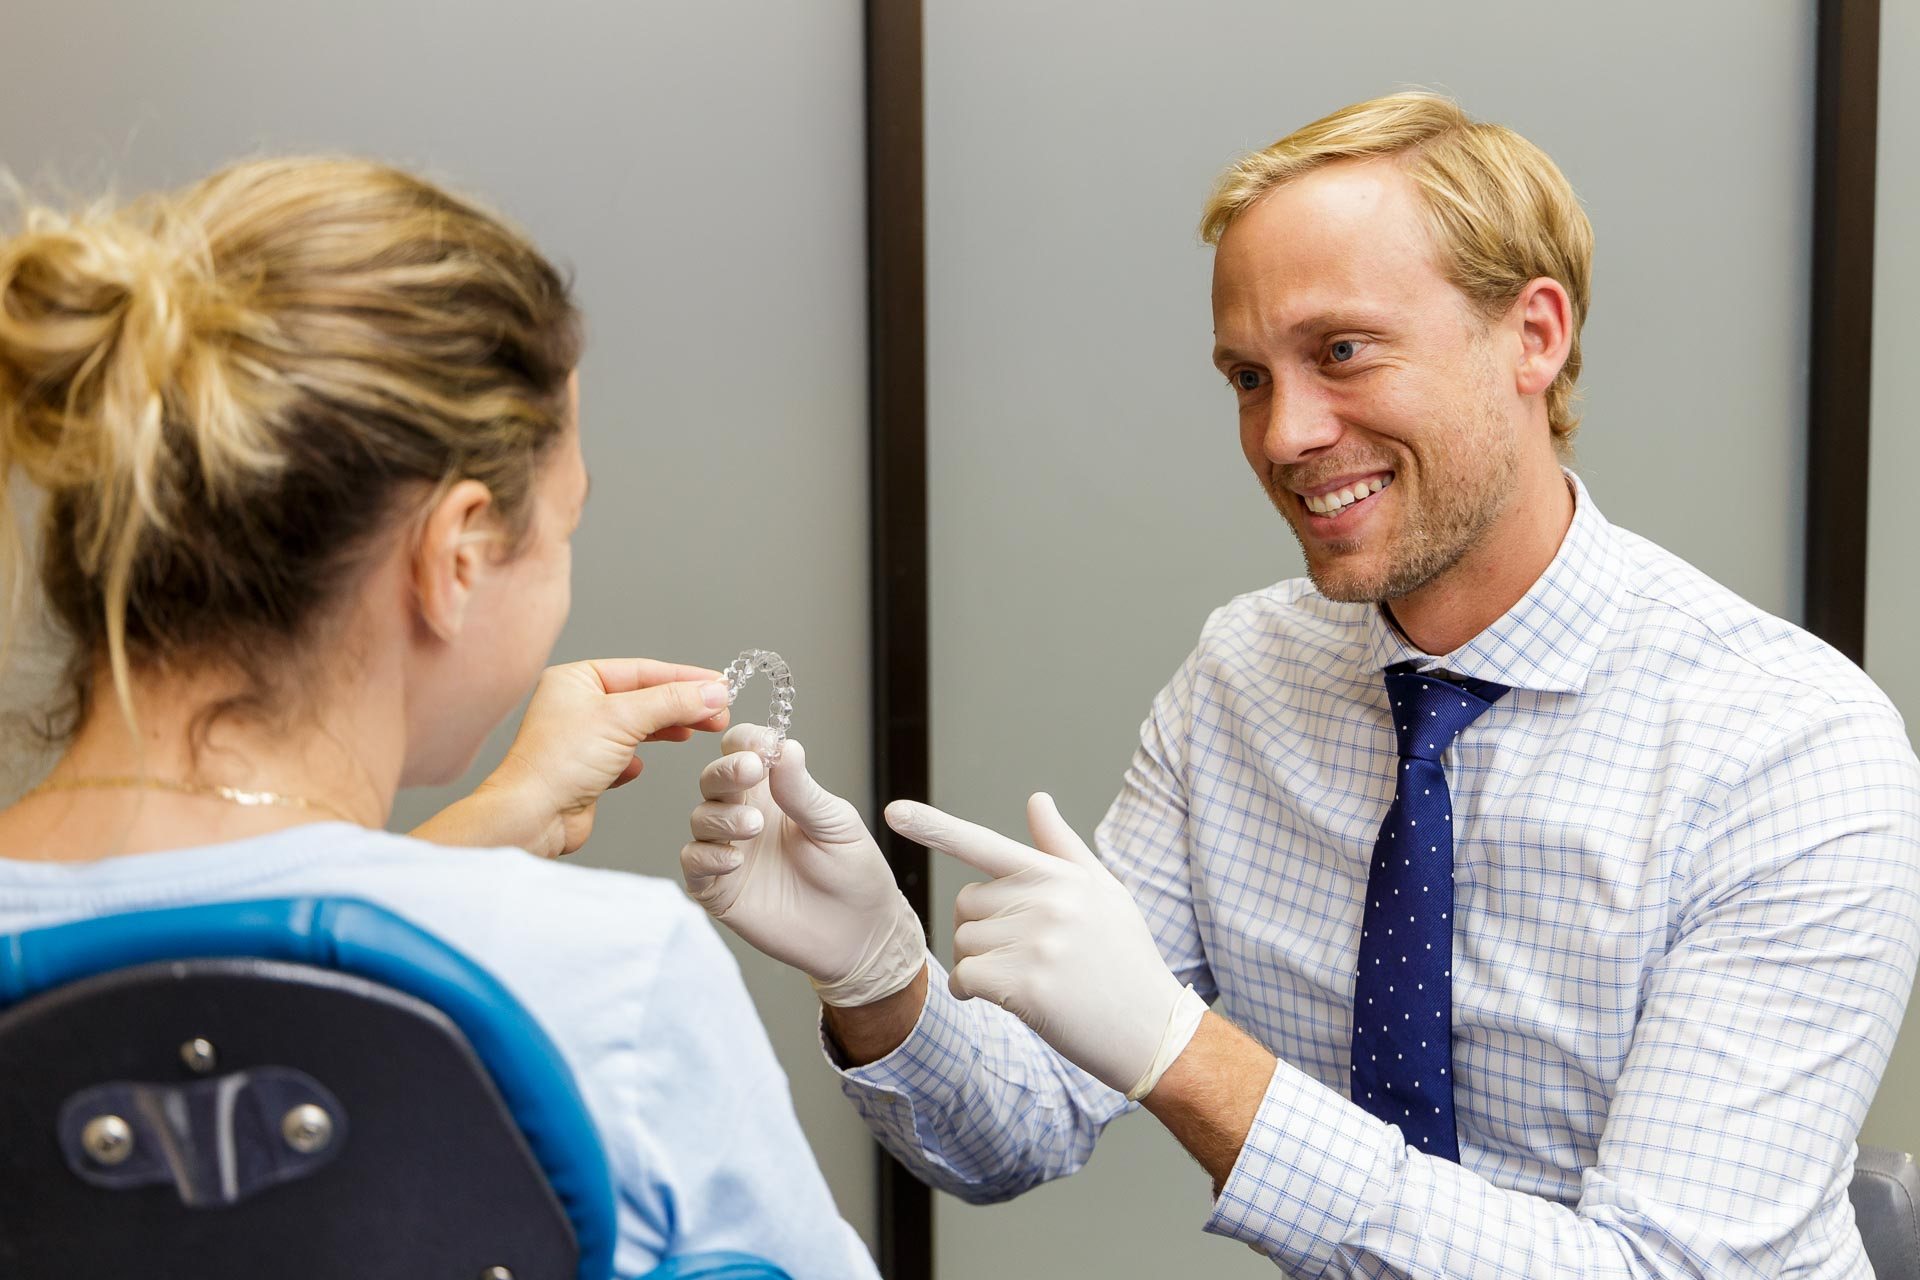 An orthodontist showing a patient their Invisalign clear retainer